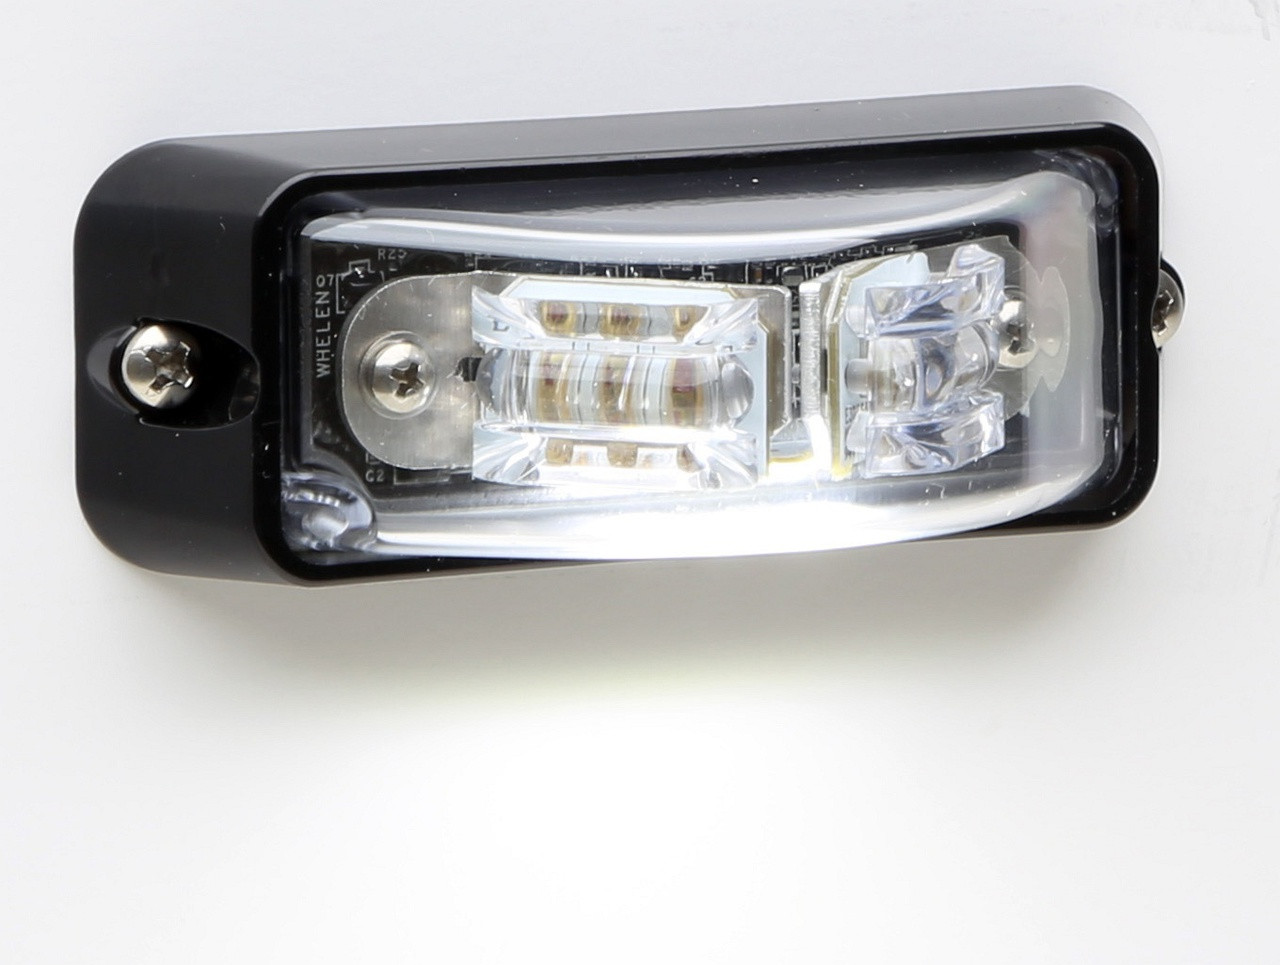 Whelen LINV2 V-Series LED Flush Surface Mount Light Head for Warning and Puddle